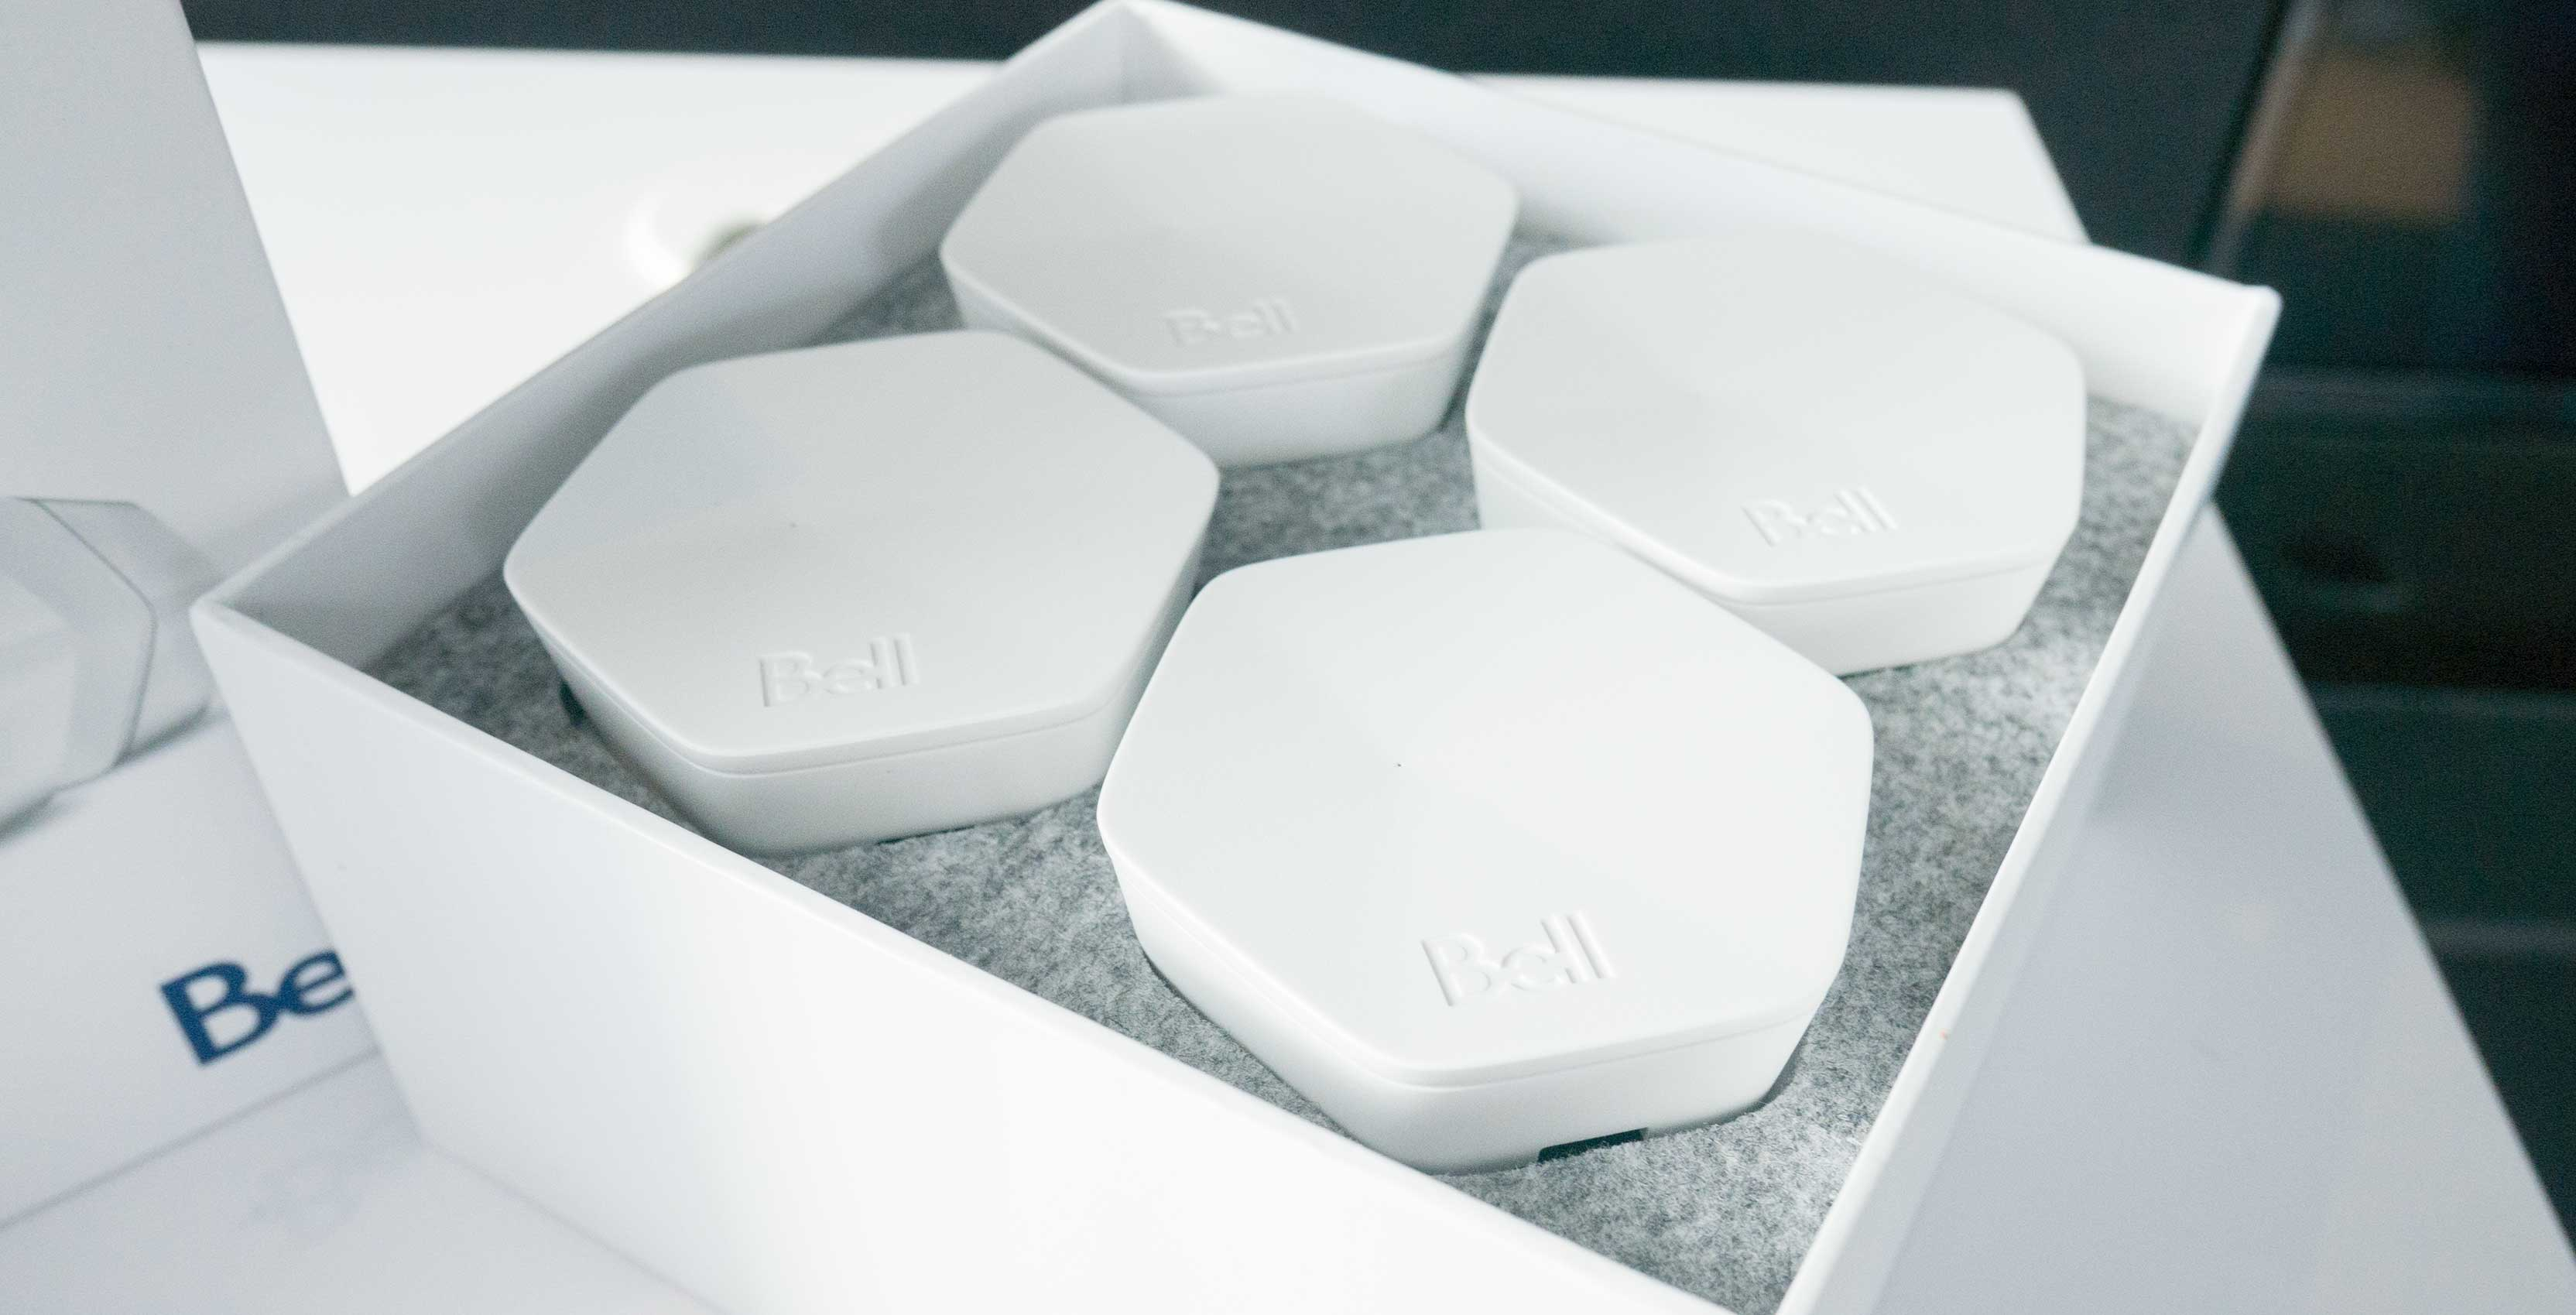 Bell launches Whole Home Wi-Fi mesh network set for $5